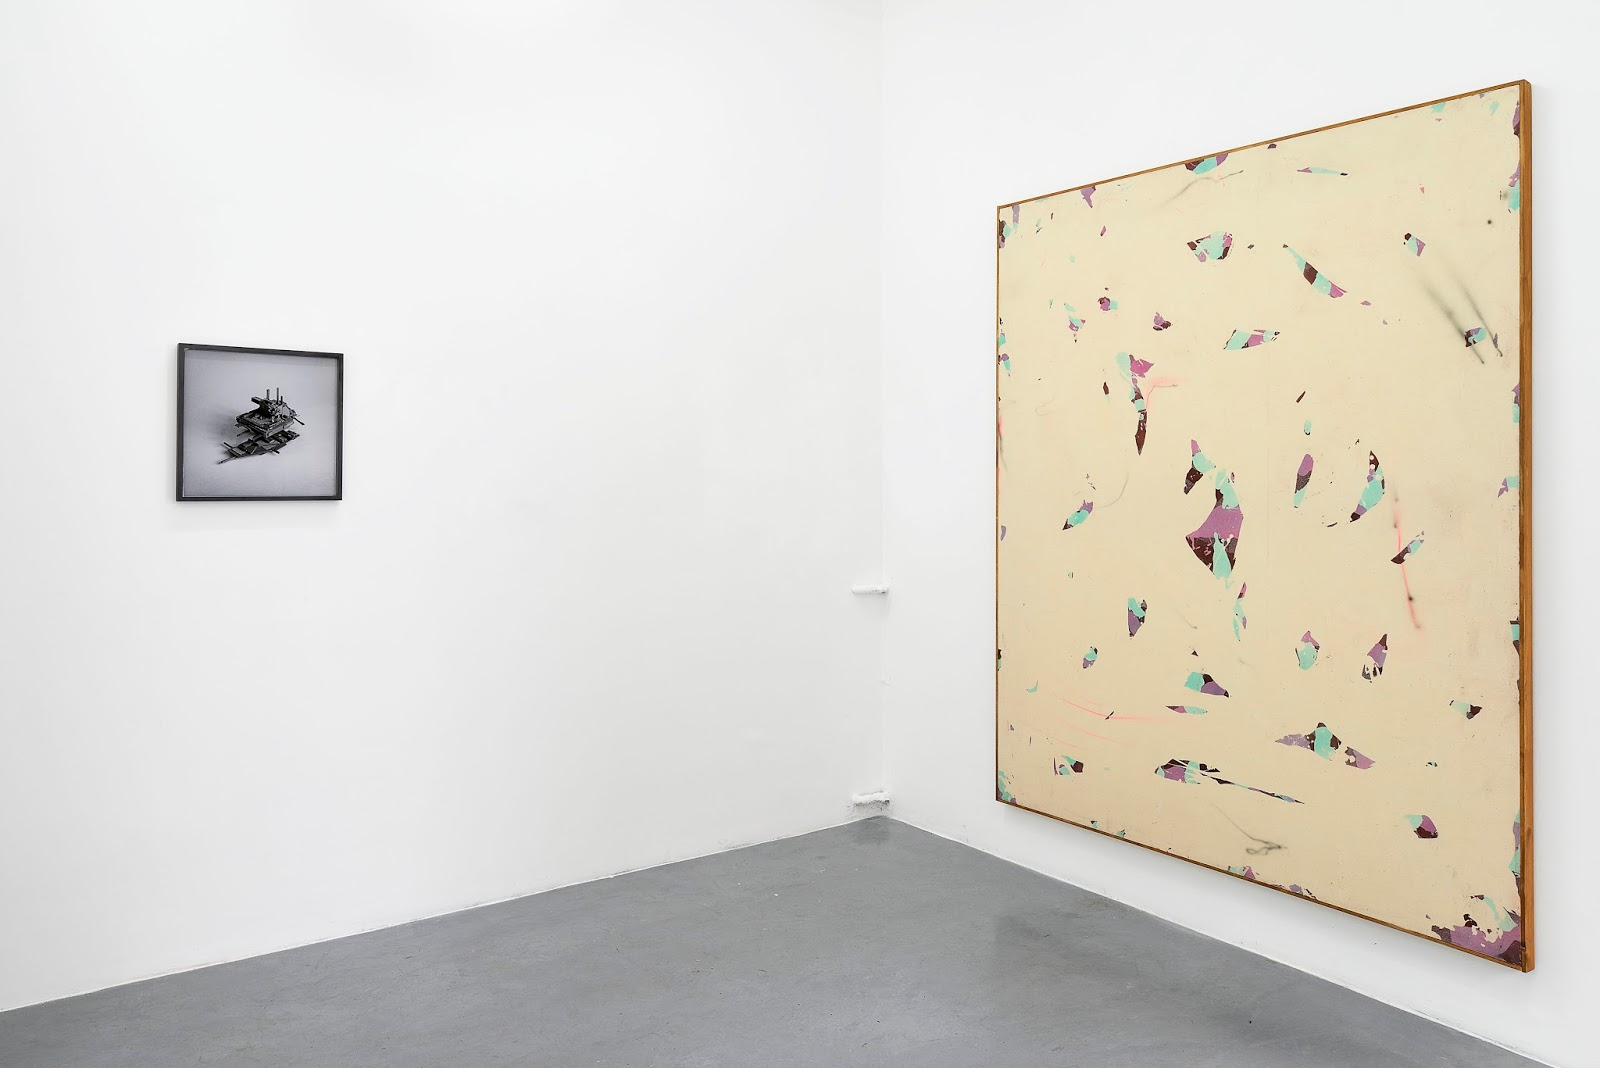 Daily Lazy: Anatomy of Restlessness at Mario Iannelli / Rome